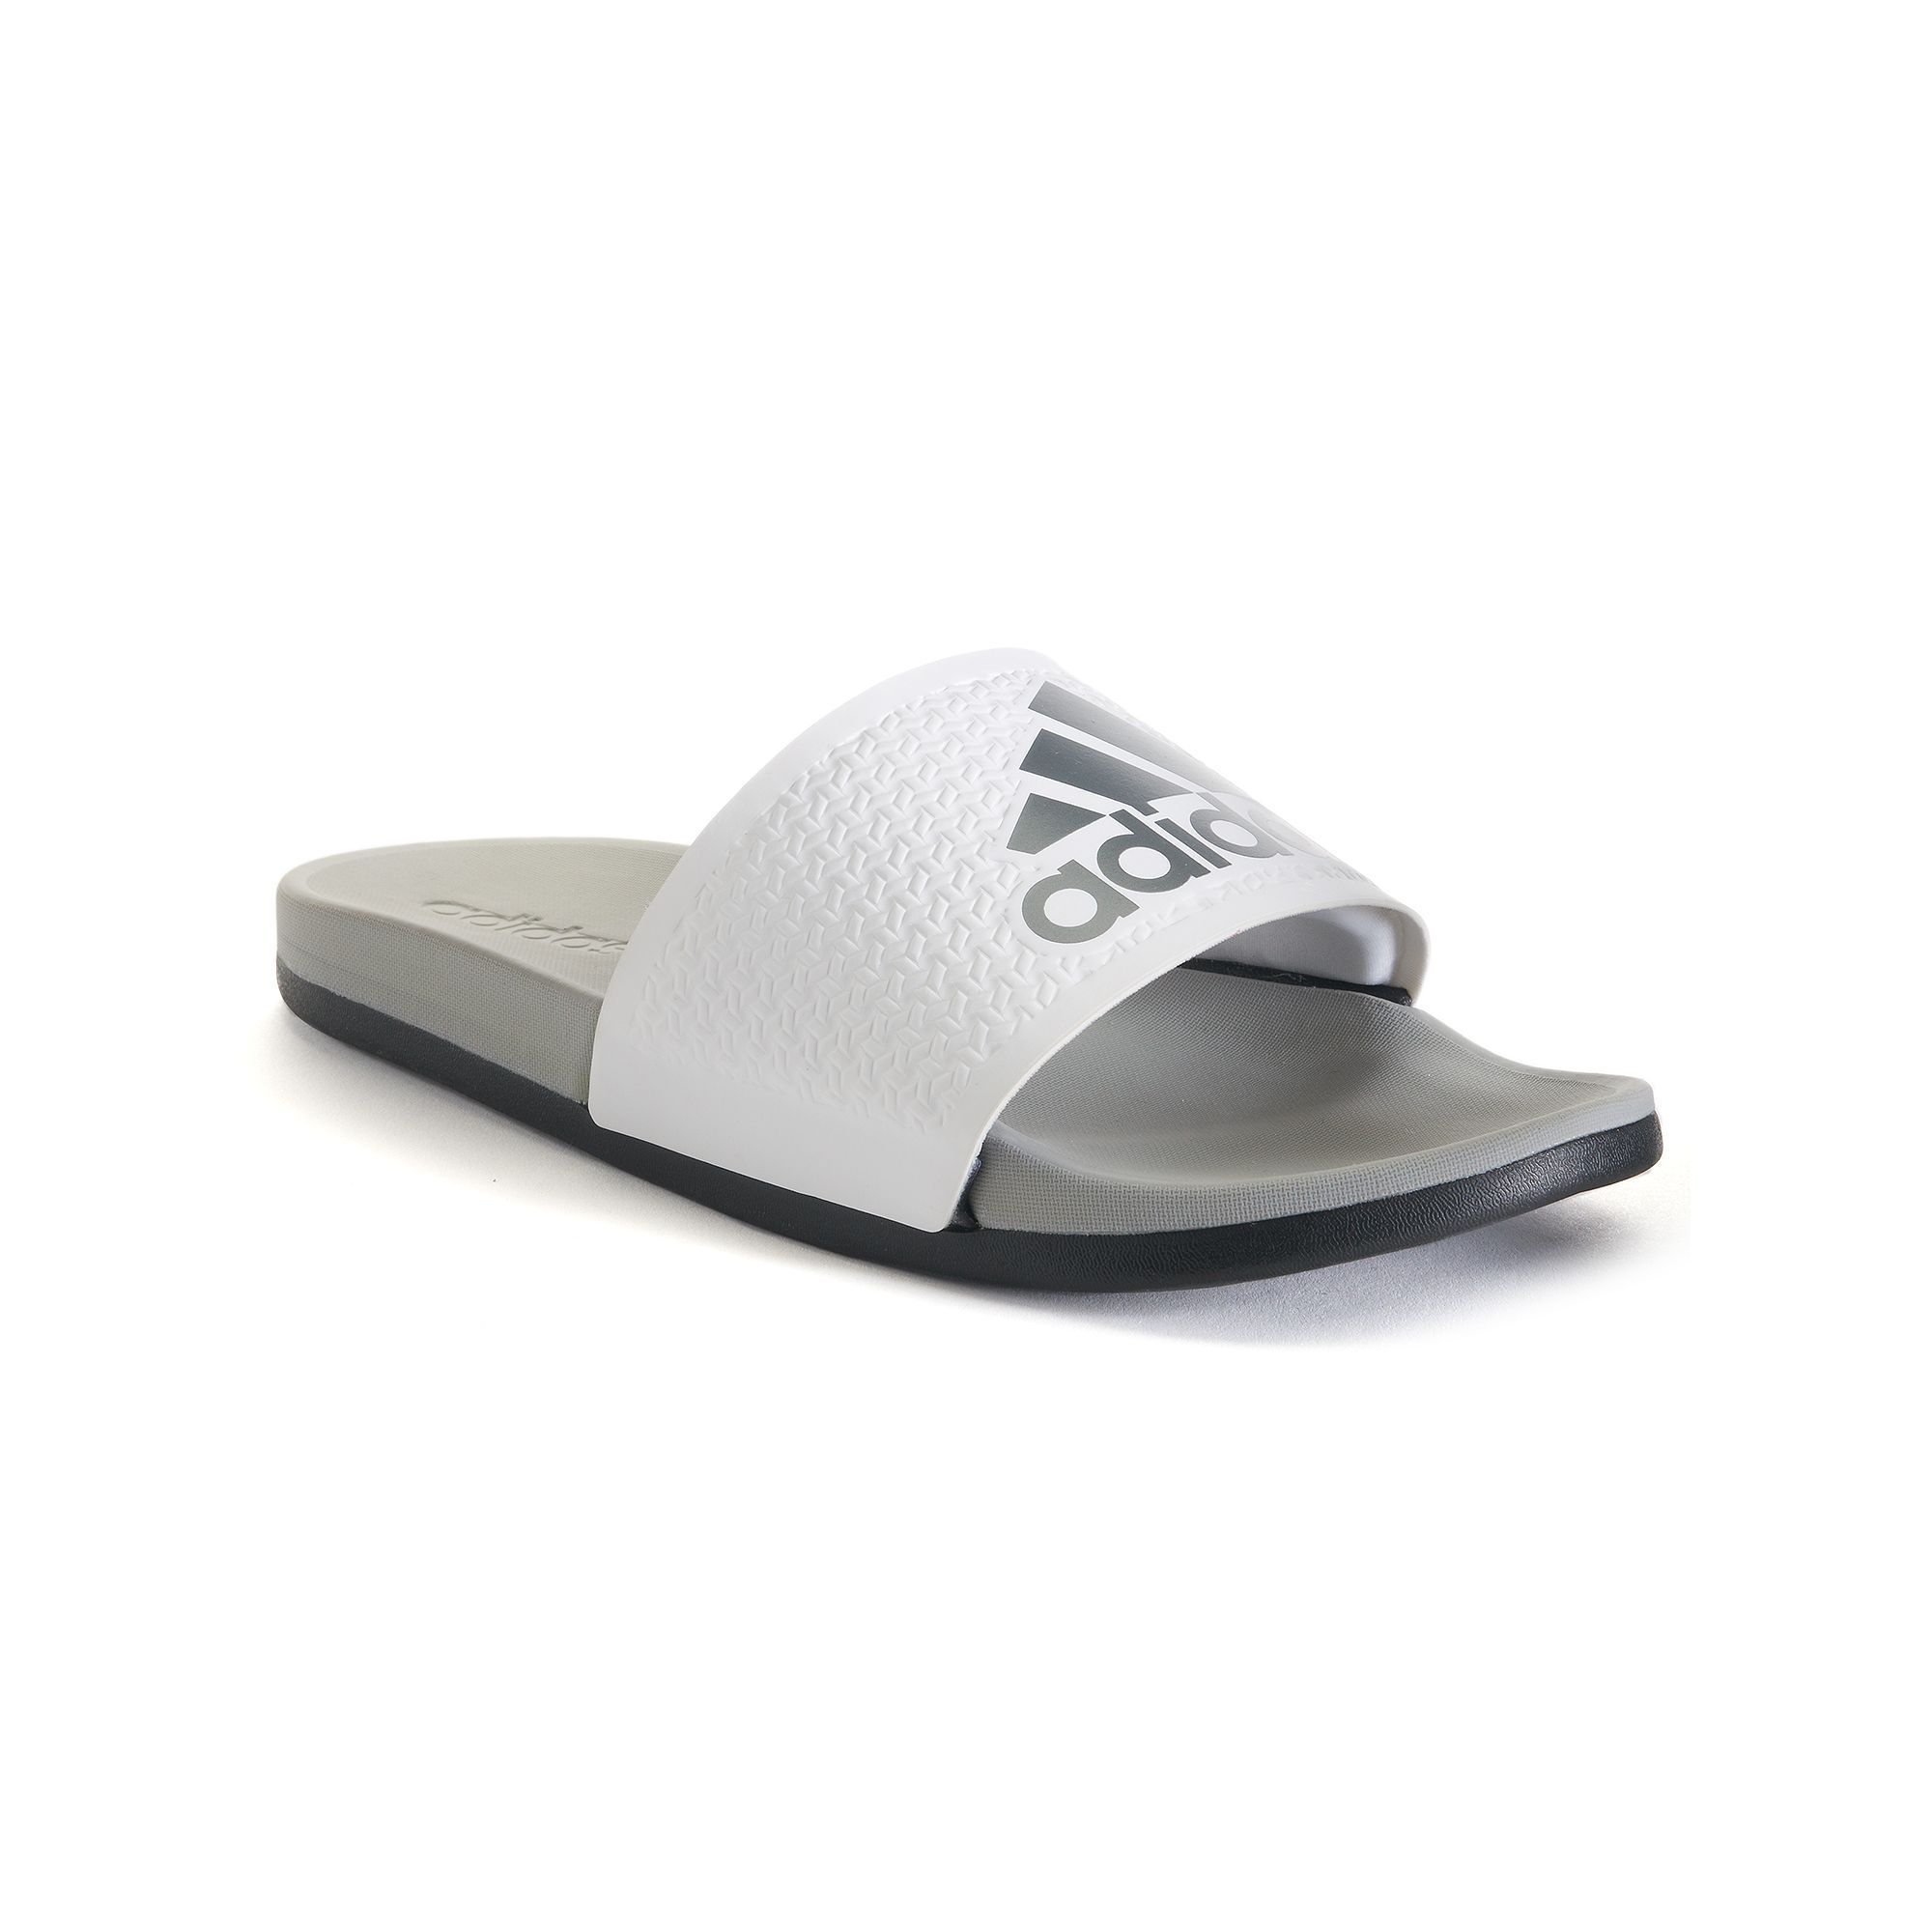 save off 5561a 2ef4f Adidas Adilette Supercloud Plus Mens Slide Sandals, Size 12, White